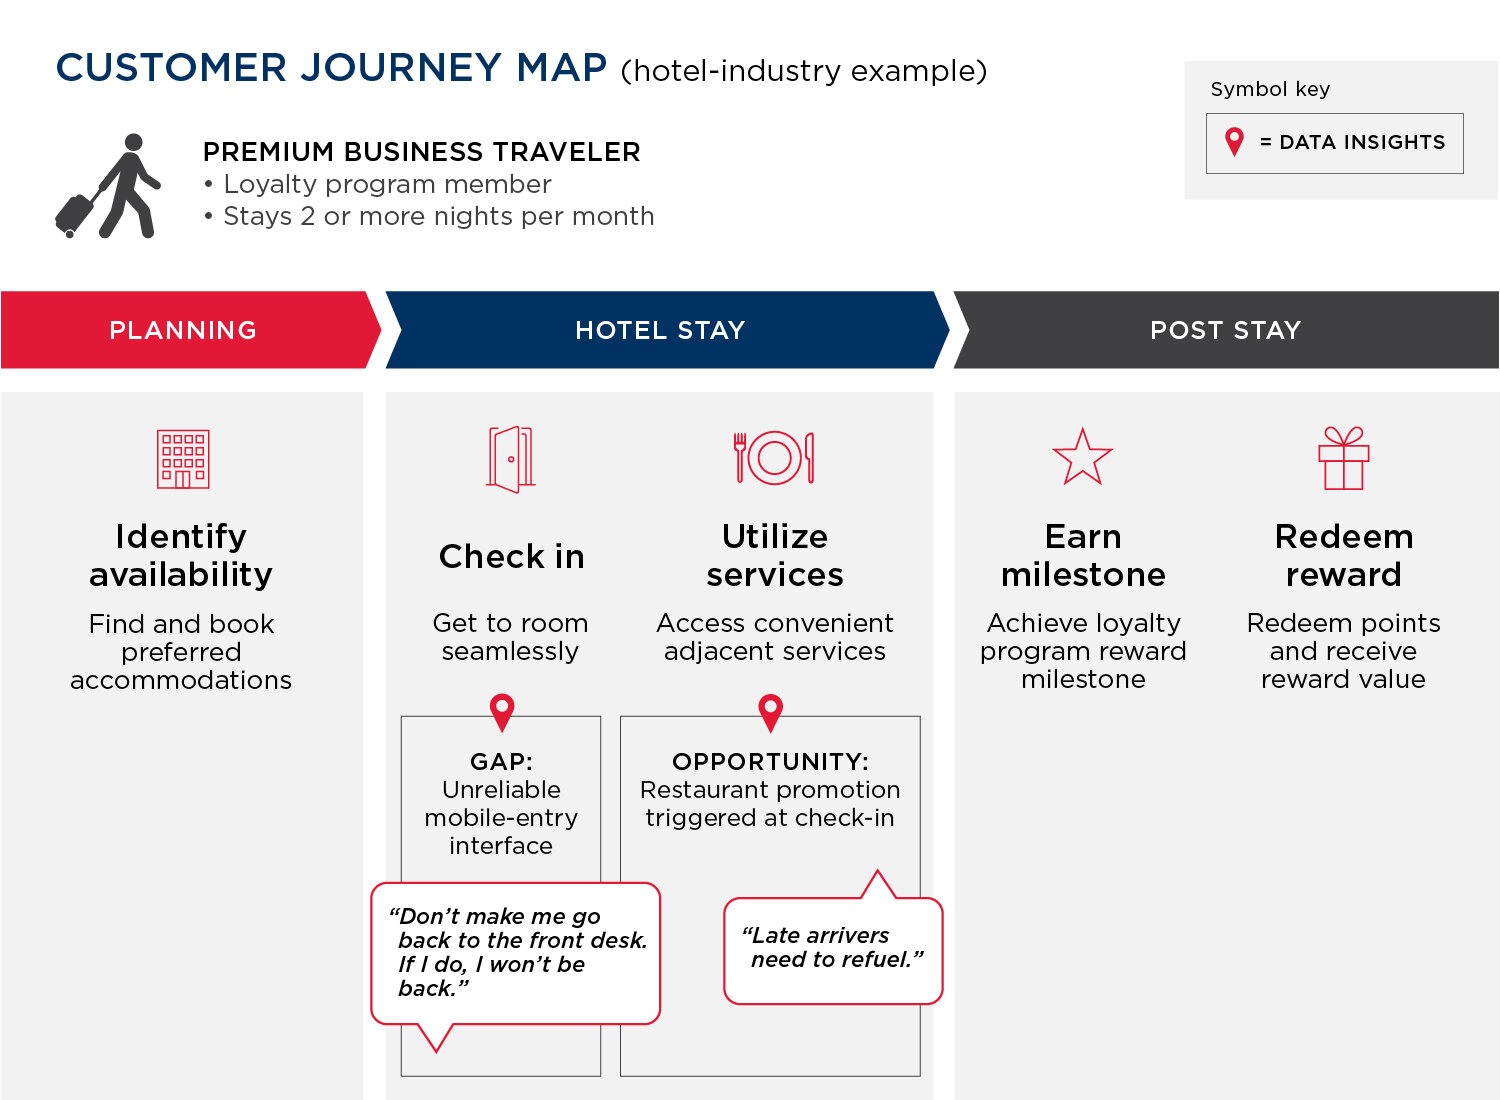 Customer journey map 1